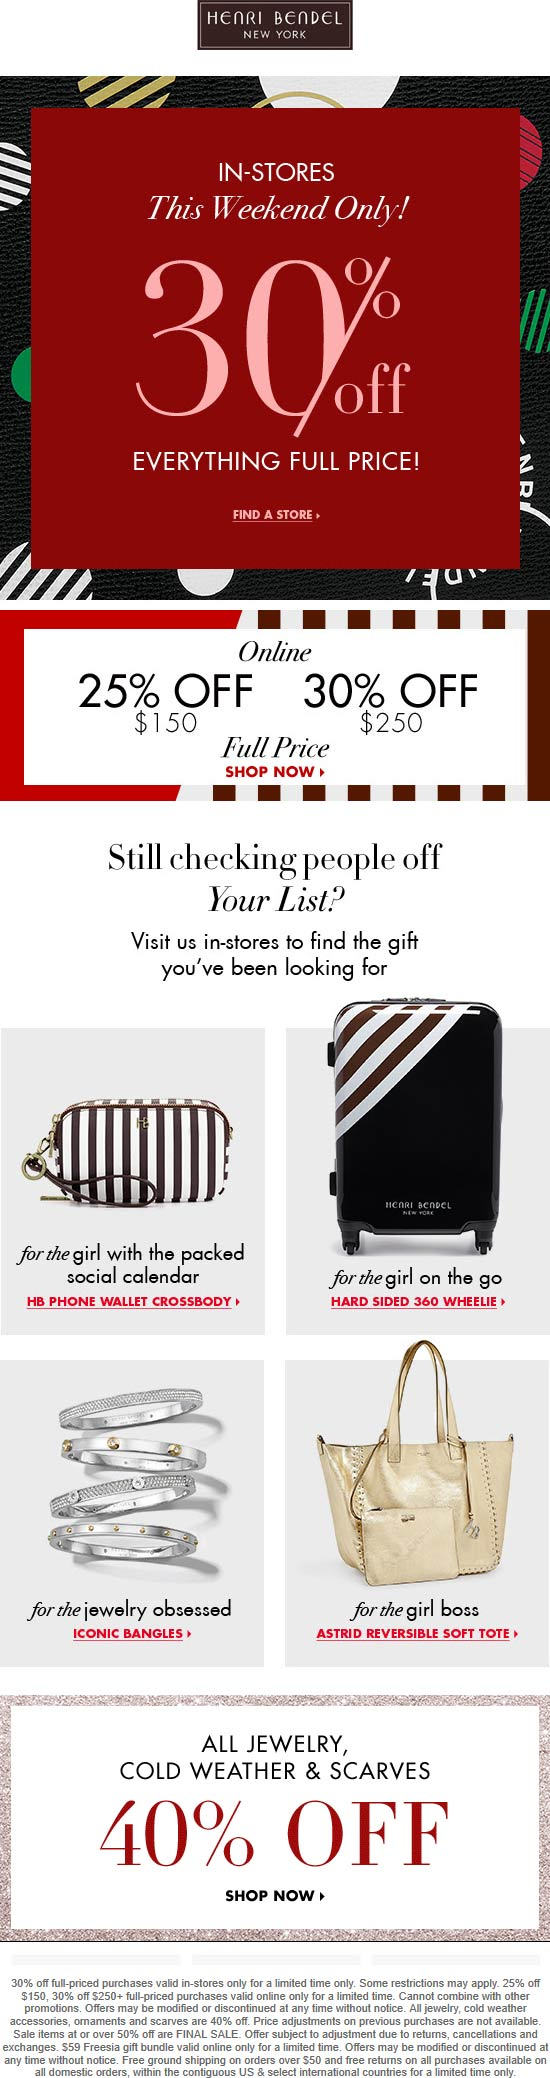 Henri Bendel Coupon July 2020 30% off & more at Henri Bendel, ditto online